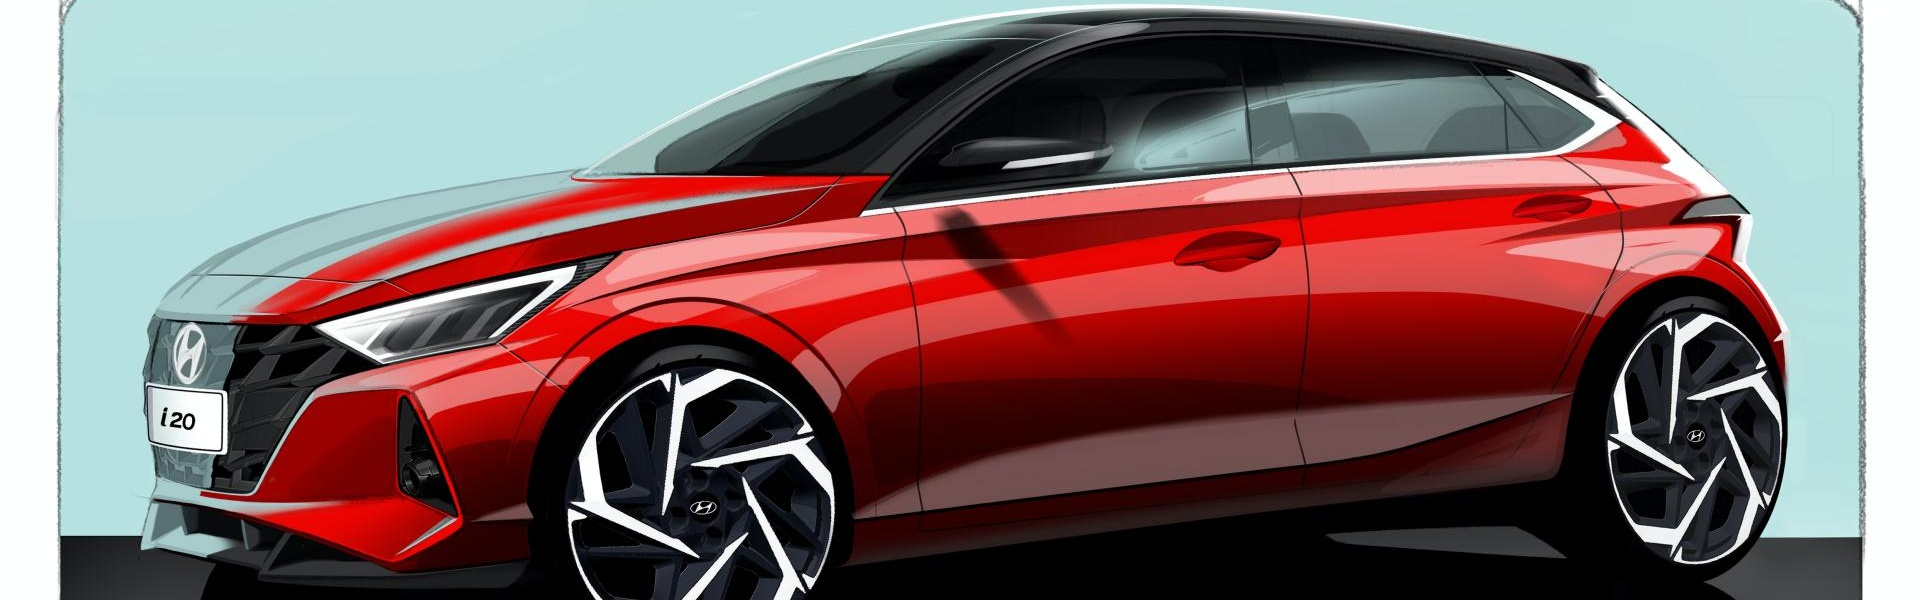 2020-Hyundai-i20-official-design-sketches-1.jpg